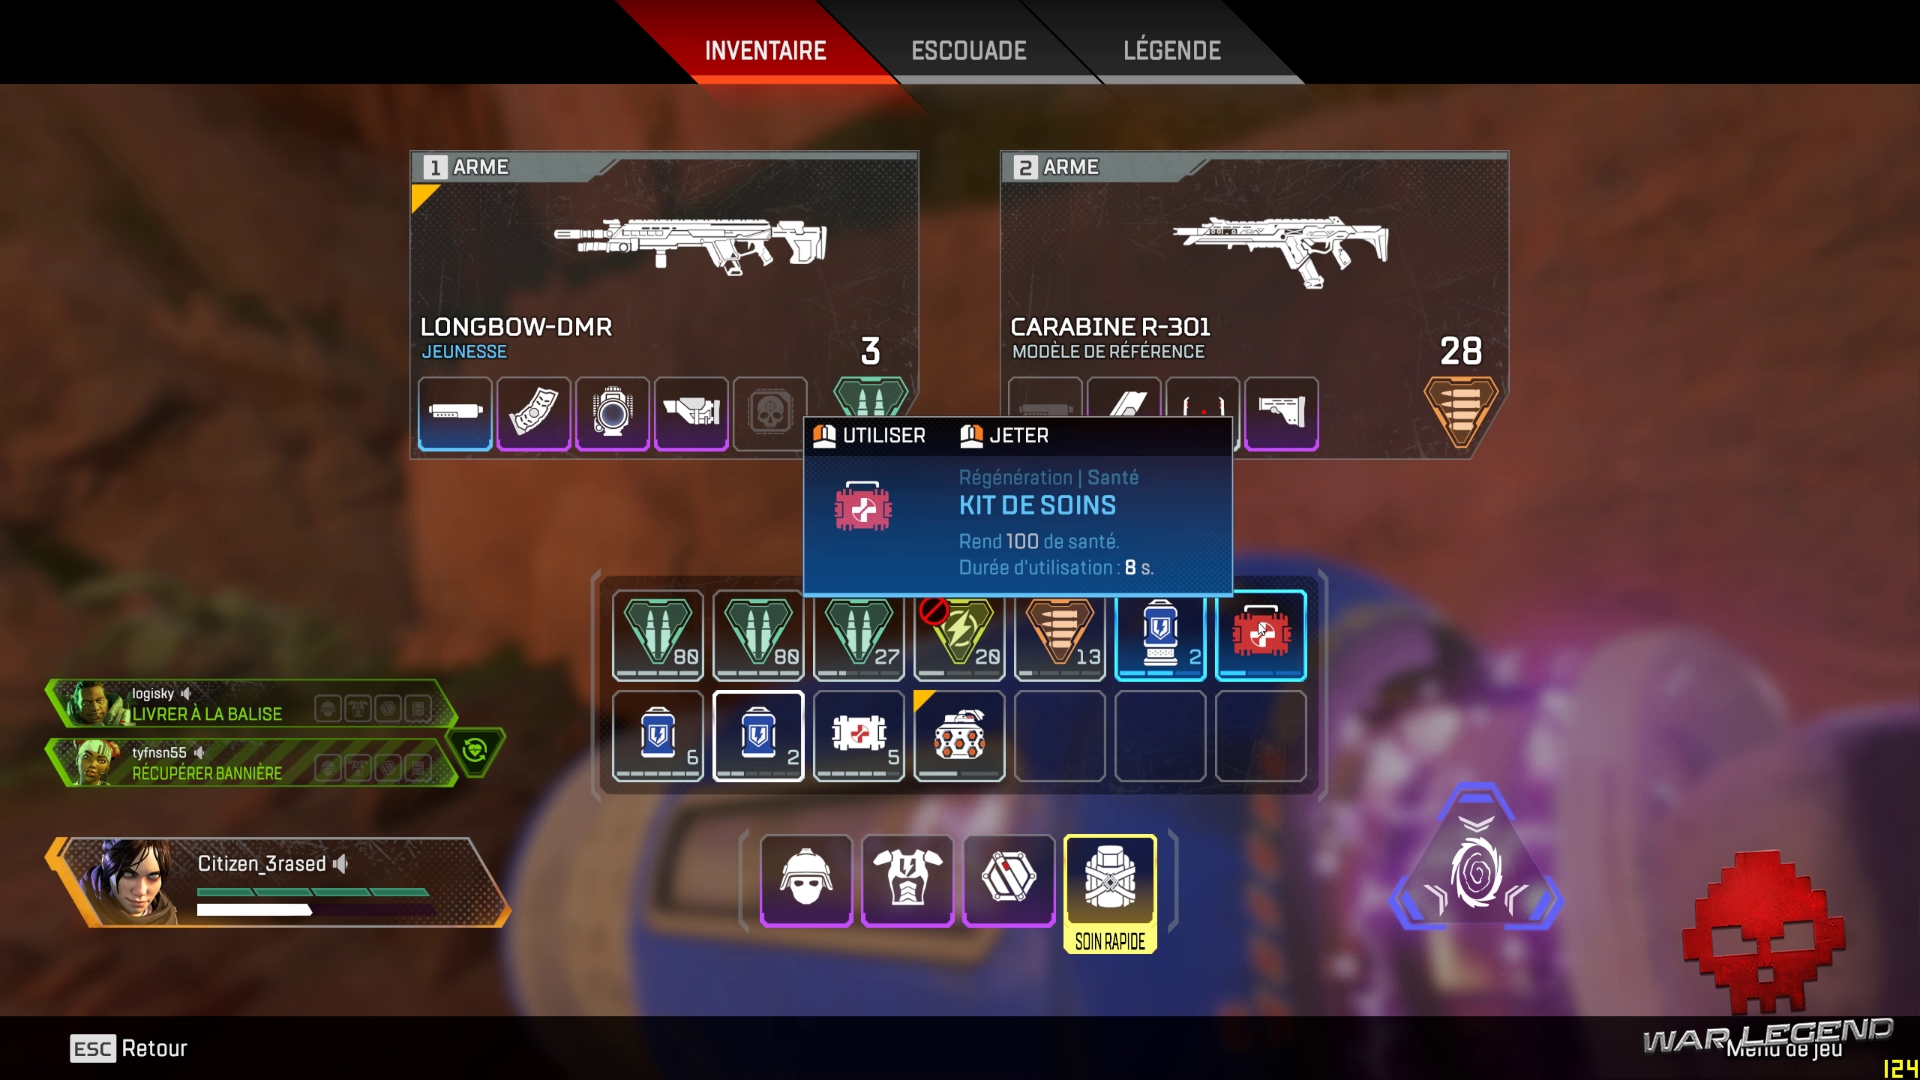 test Apex Legends - Inventaire